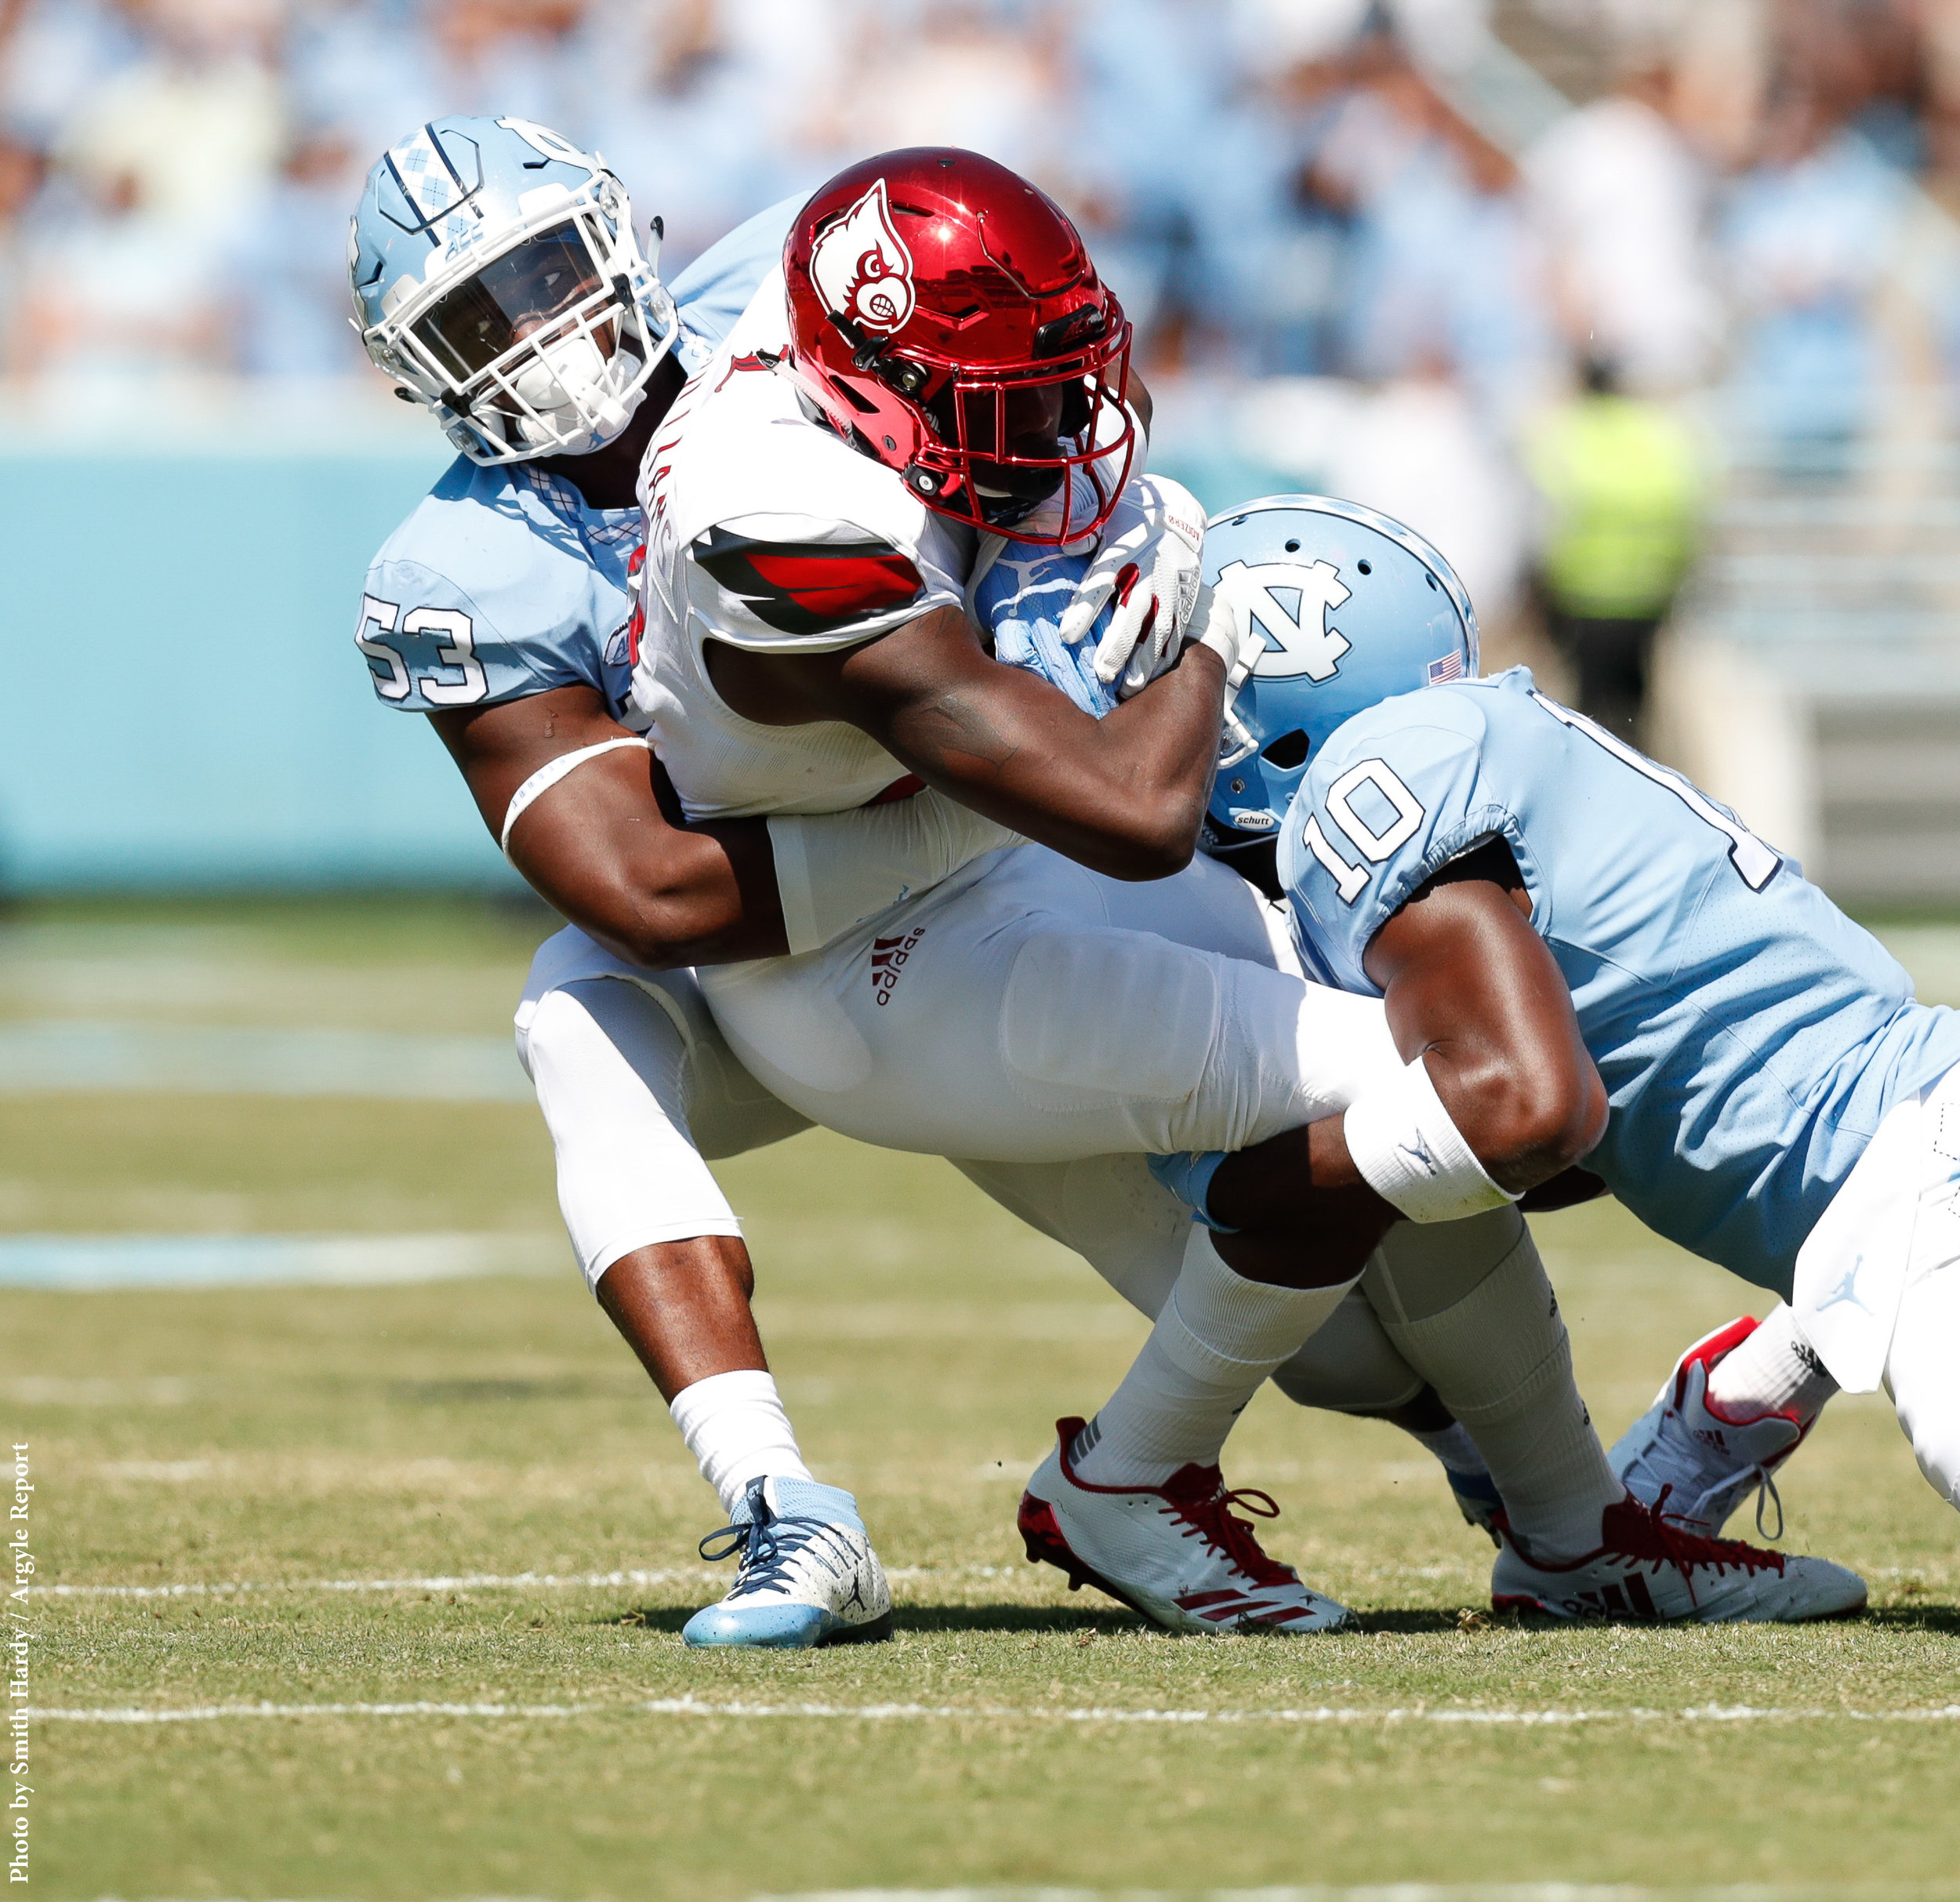 Tarheels vs Cards Football 2017 (1 of 4).jpg